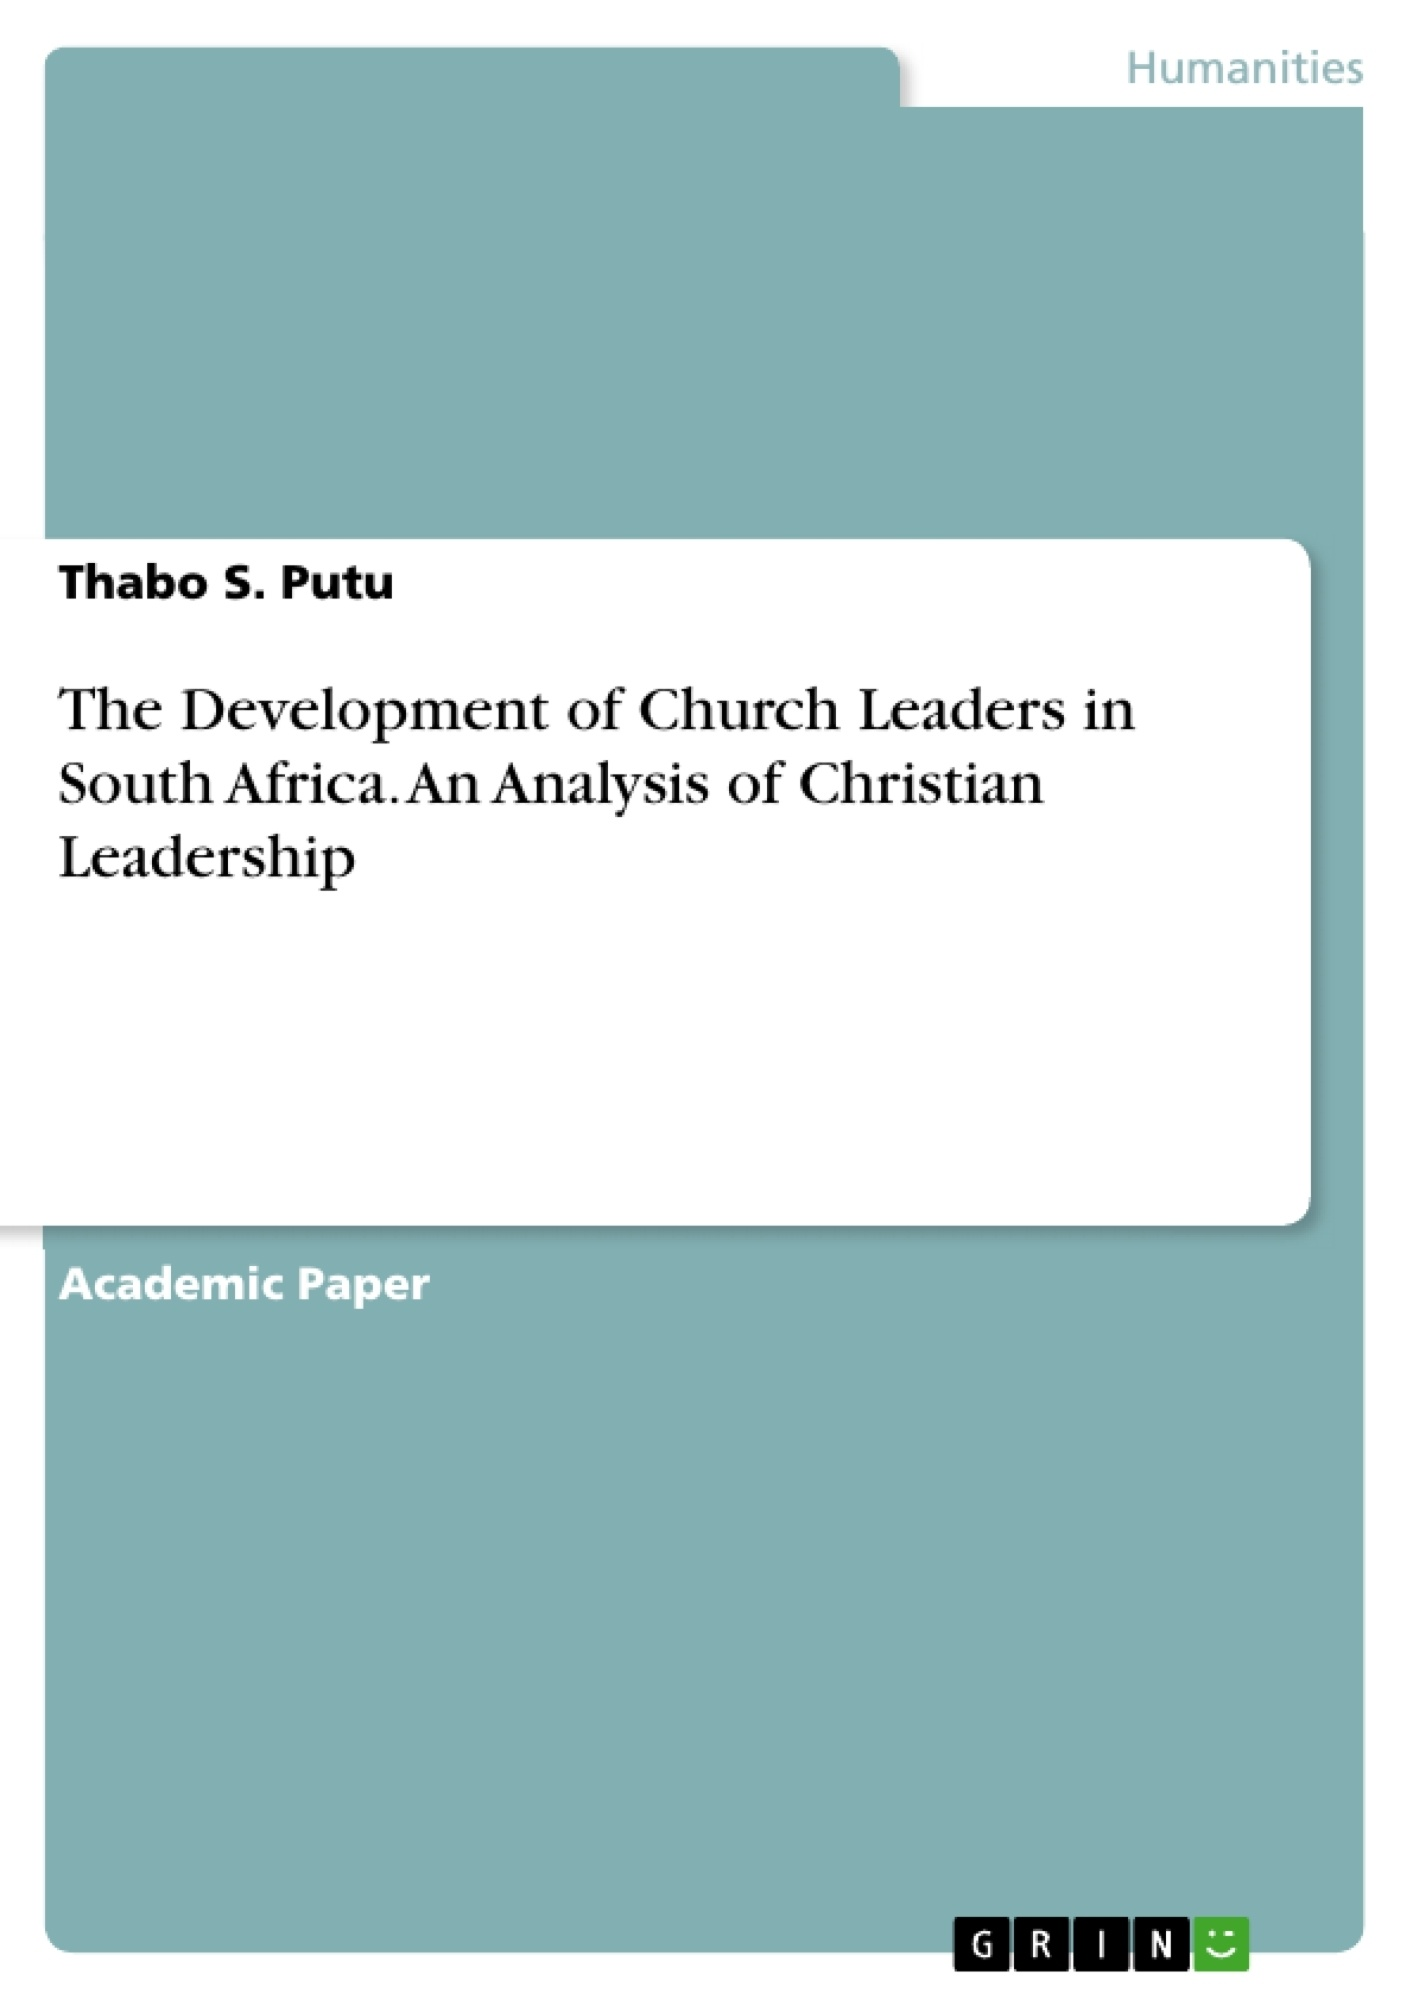 Title: The Development of Church Leaders in South Africa. An Analysis of Christian Leadership